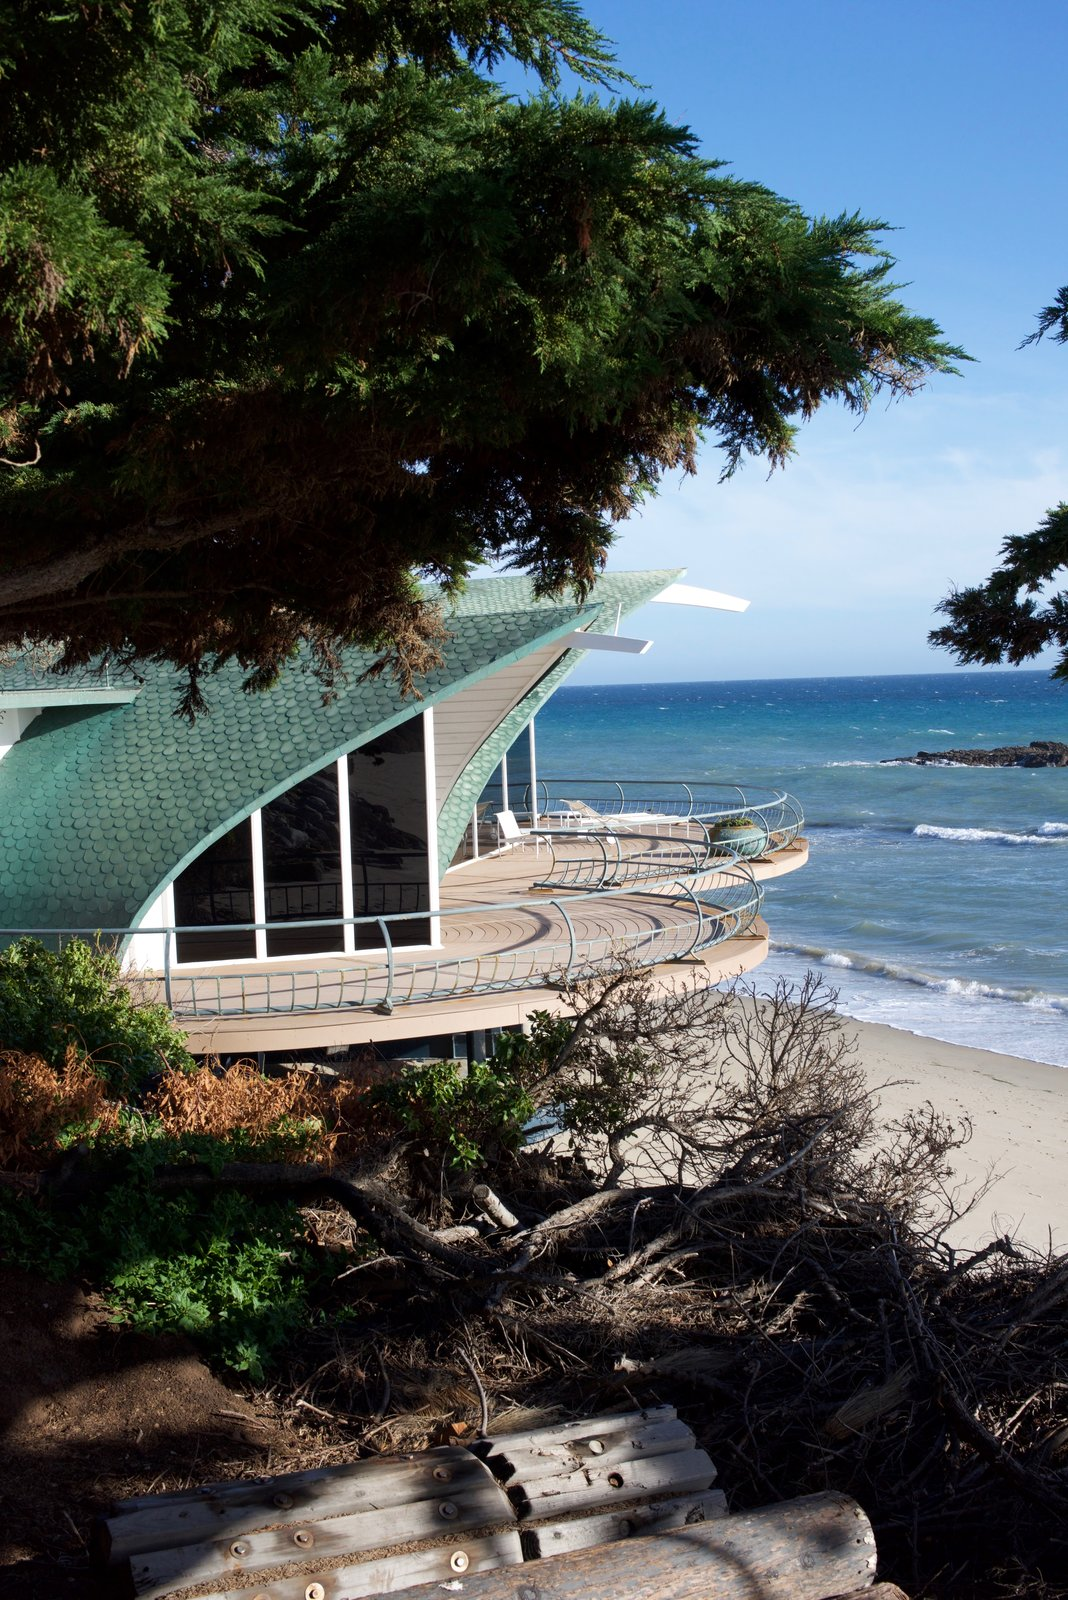 The Wave House sits directly next to the Sandcastle on the sands of Malibu. When Gesner created it in 1957, the design had originally been born when he was surfing and drew the shape of the house on his surfboard with a piece of grease pencil, and would transfer it to a drawing pad and vellum when he returned to the sand. He found inspiration in the way a giant wave embraces you—and how you become a part of it. The roof is lined with copper shingles layered in a way that gives the impression of fish scales.  Photo 8 of 9 in Iconic Perspectives: Harry Gesner's Sandcastle